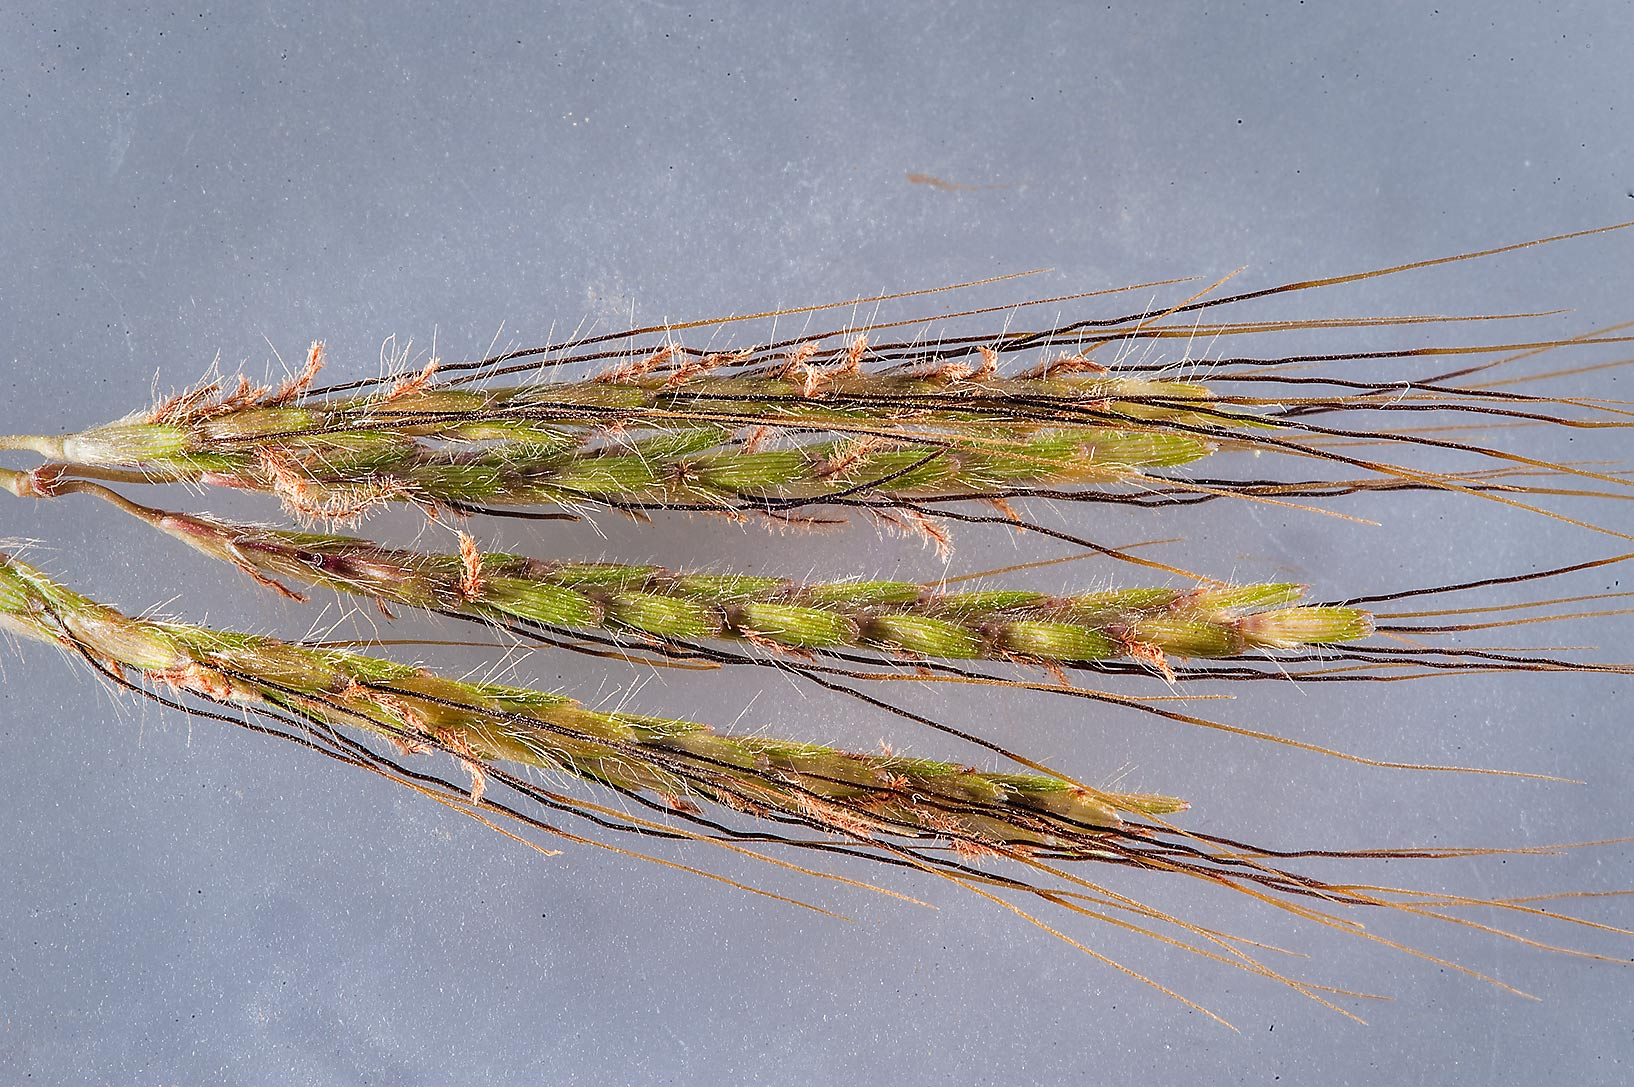 Spikelet of Hindi grass (Diaz bluestem...of Al Magdah farms. Northern Qatar